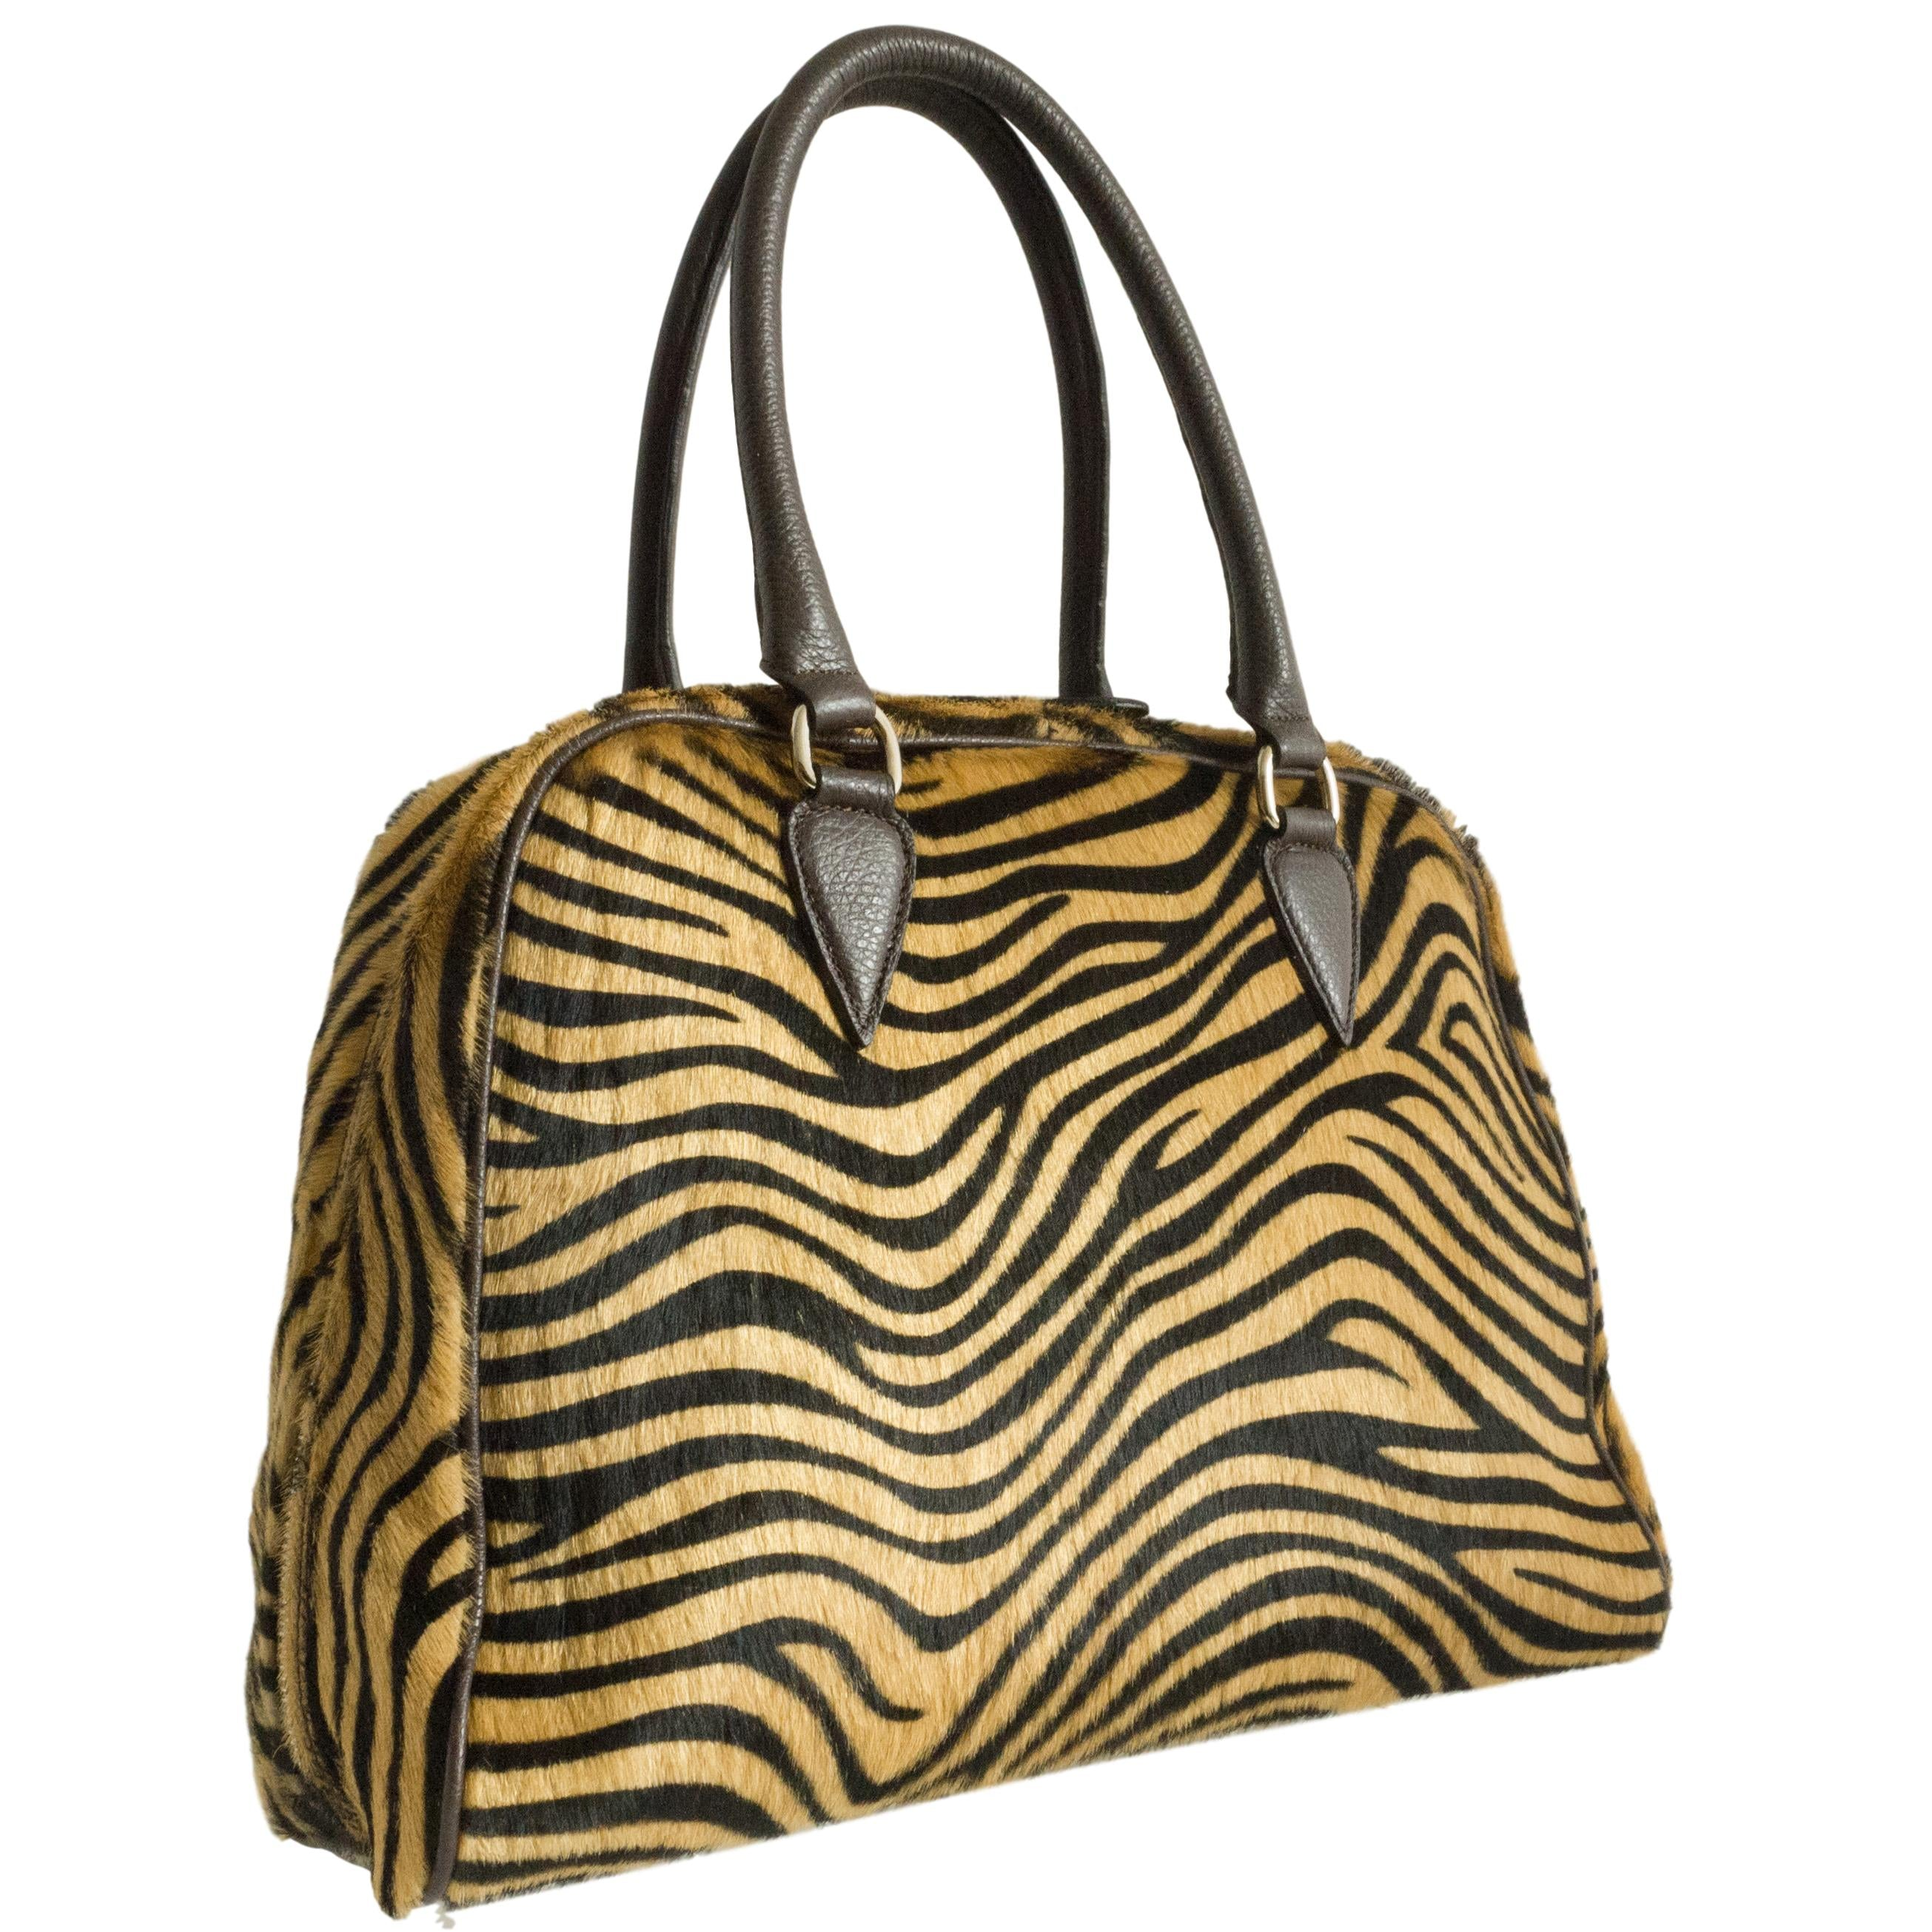 Mimosa furry leather handbag - Tiger Print